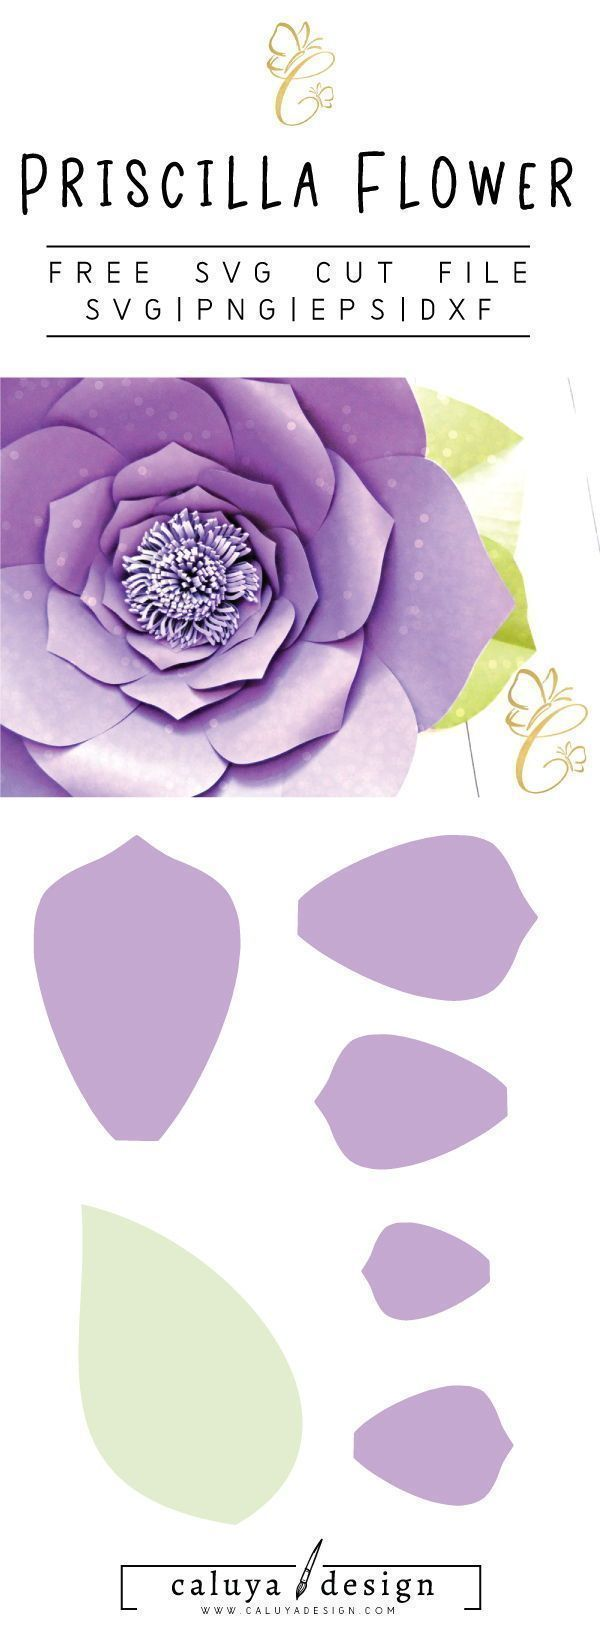 Priscilla flower free cut file by catching colorflies designs priscilla flower free cut file by catching colorflies designs cricut pinterest cricut cuttings and silhouette mightylinksfo